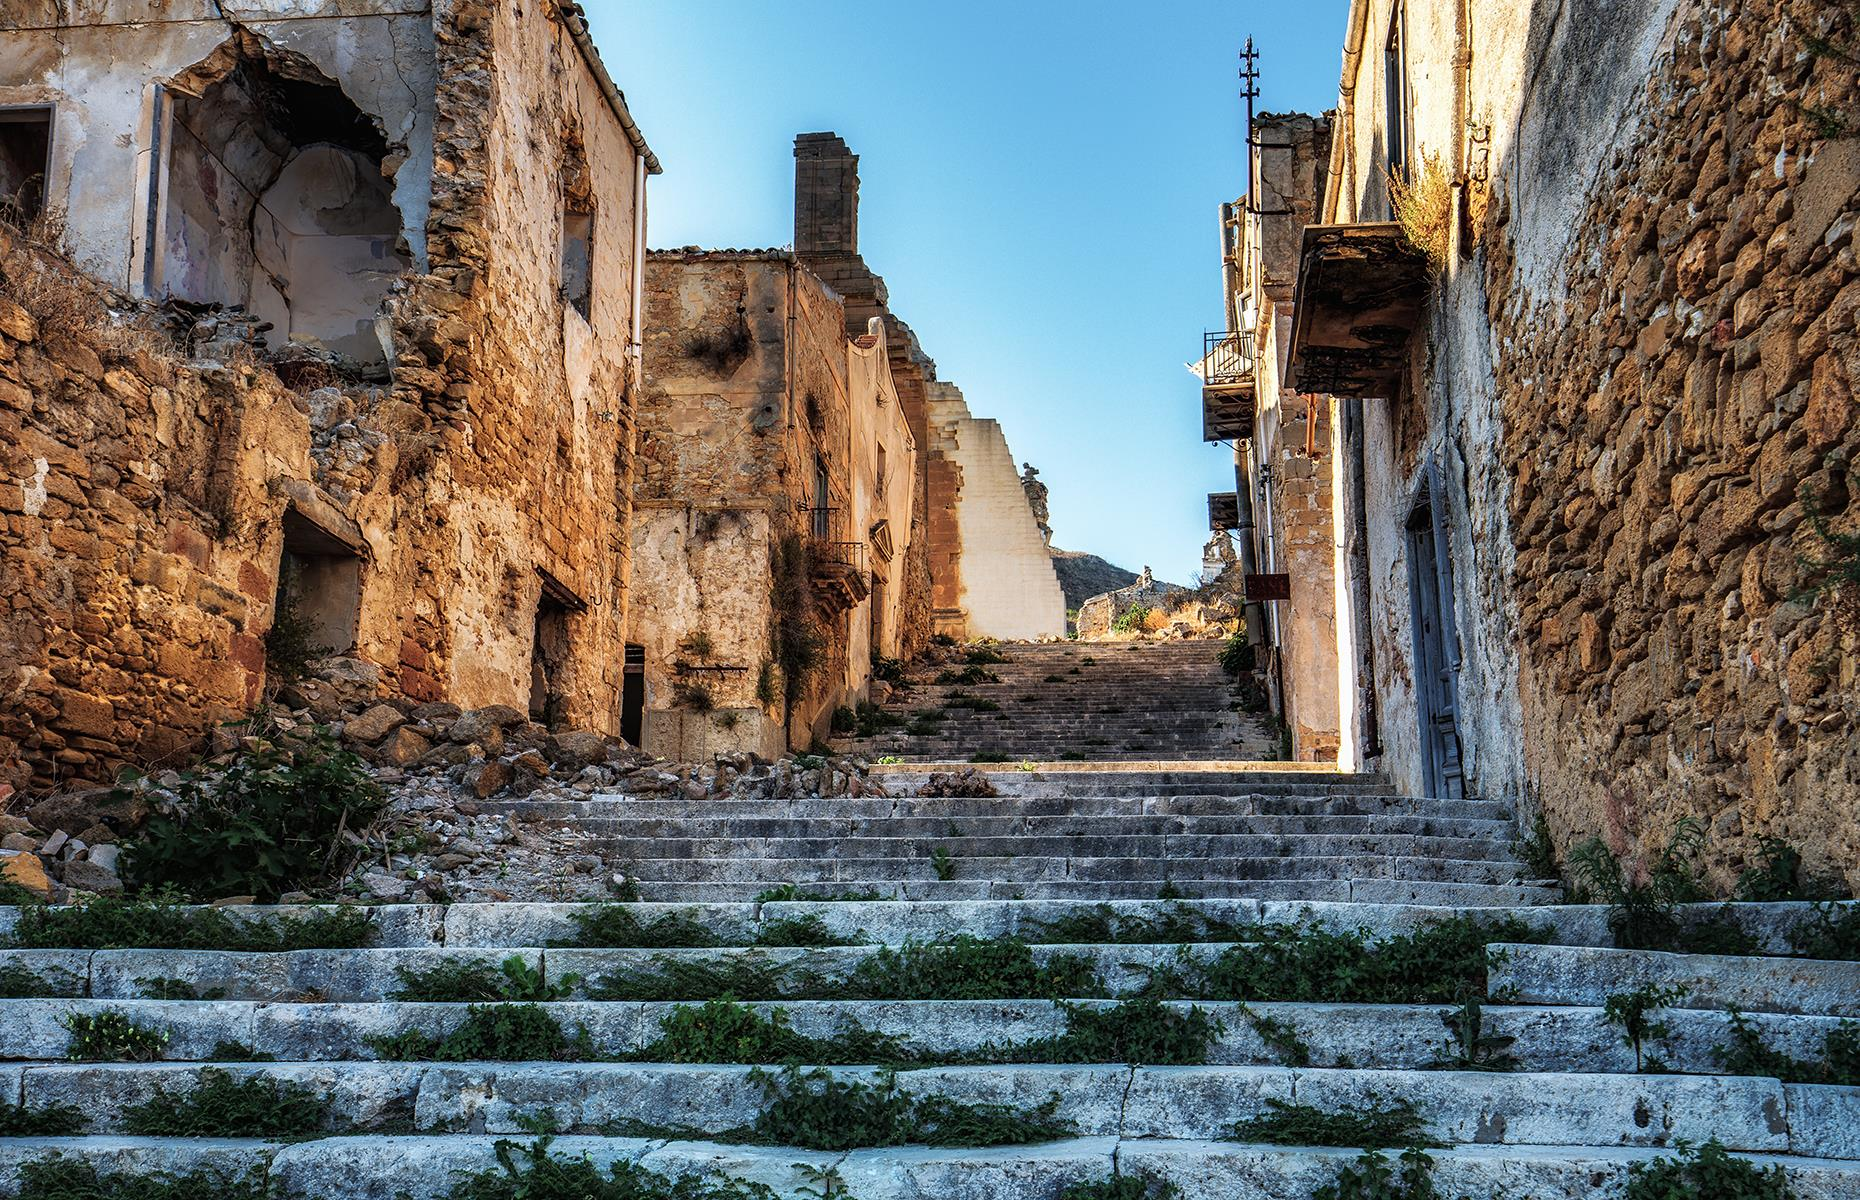 Slide 52 of 68: When a violent earthquake rocked Poggioreale in Sicily in January 1968, the devastated town was abruptly abandoned. The survivors rebuilt their community across the valley.